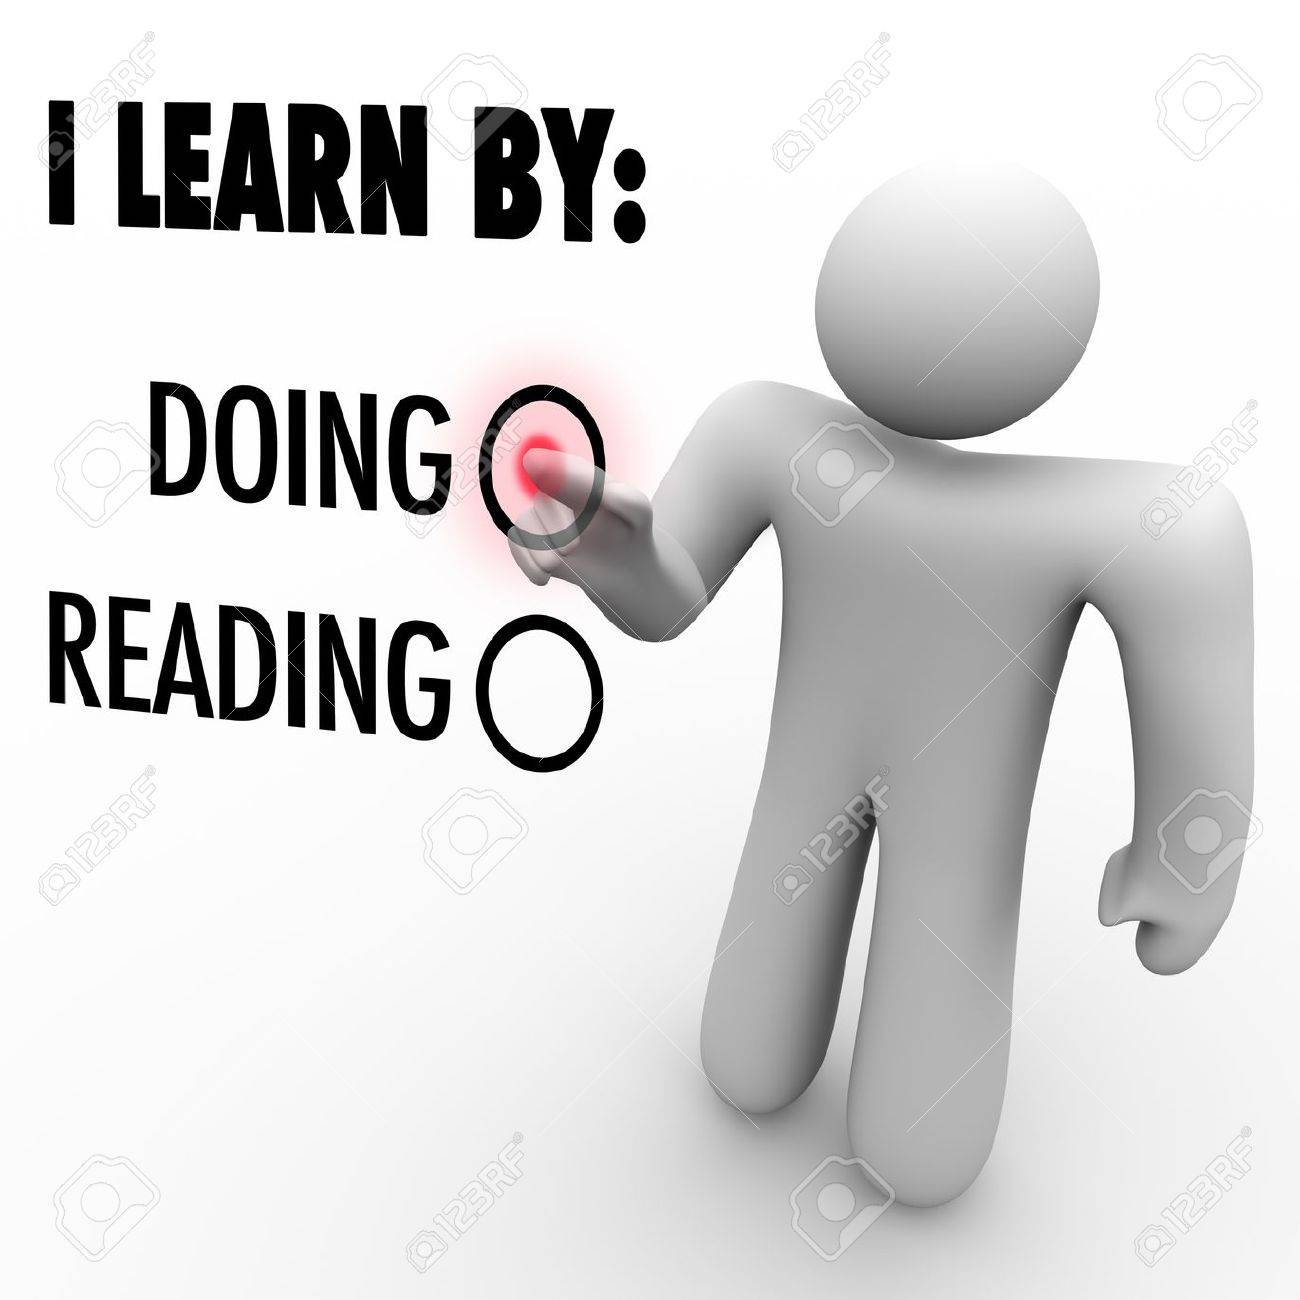 a man presses a button beside the word doing to indicate his a man presses a button beside the word doing to indicate his preferred method of learning